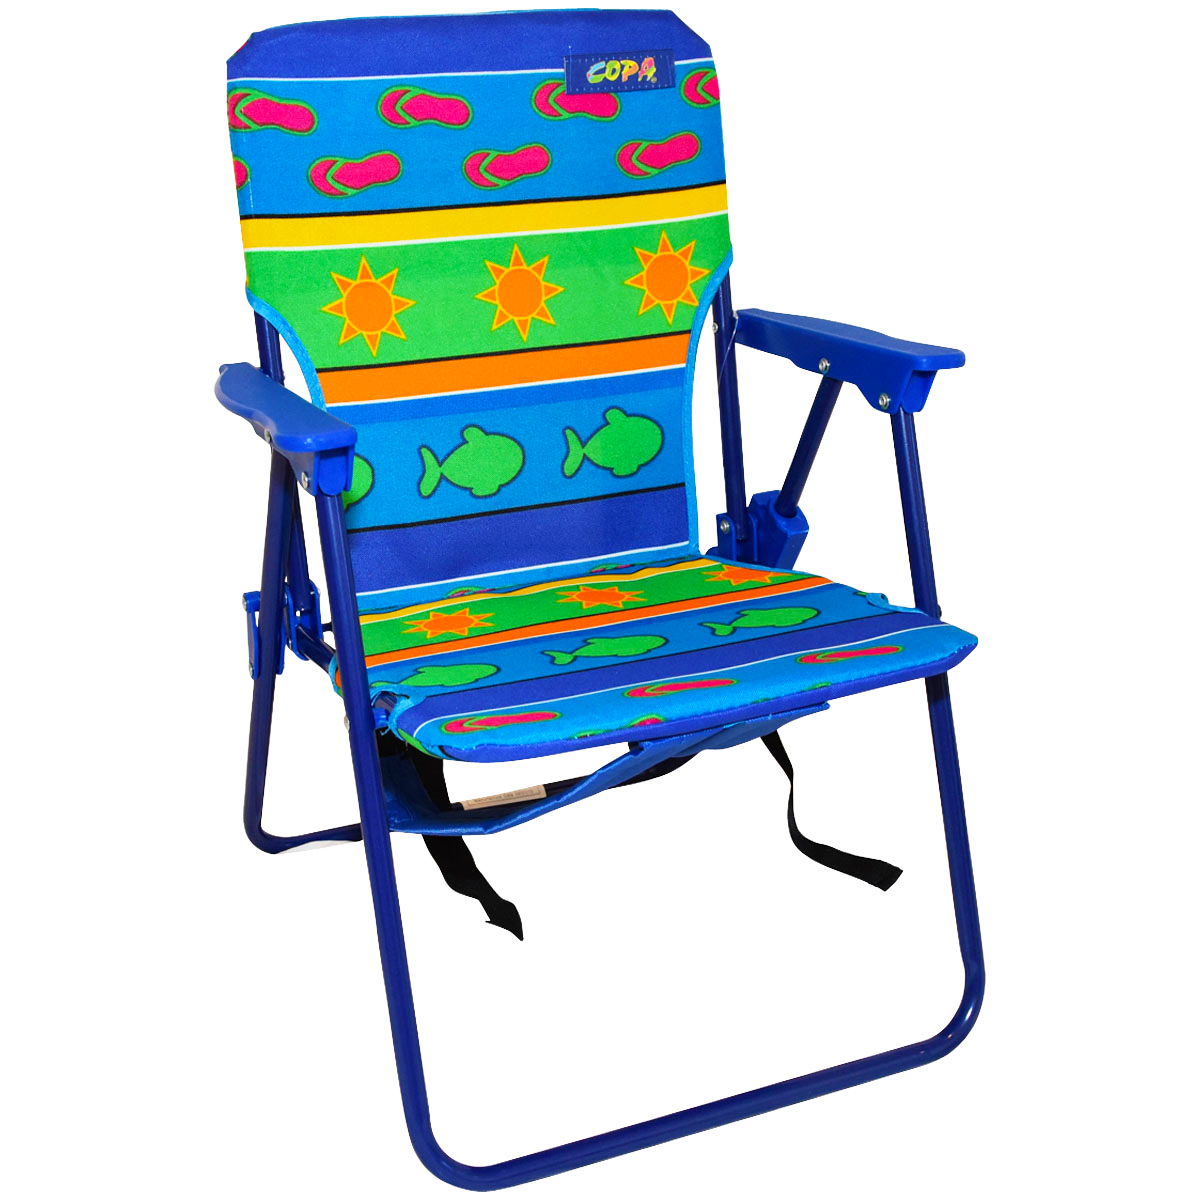 Cheap Beach Chairs Small Beach Chair For Kid Cheap Beach And Camping Chair